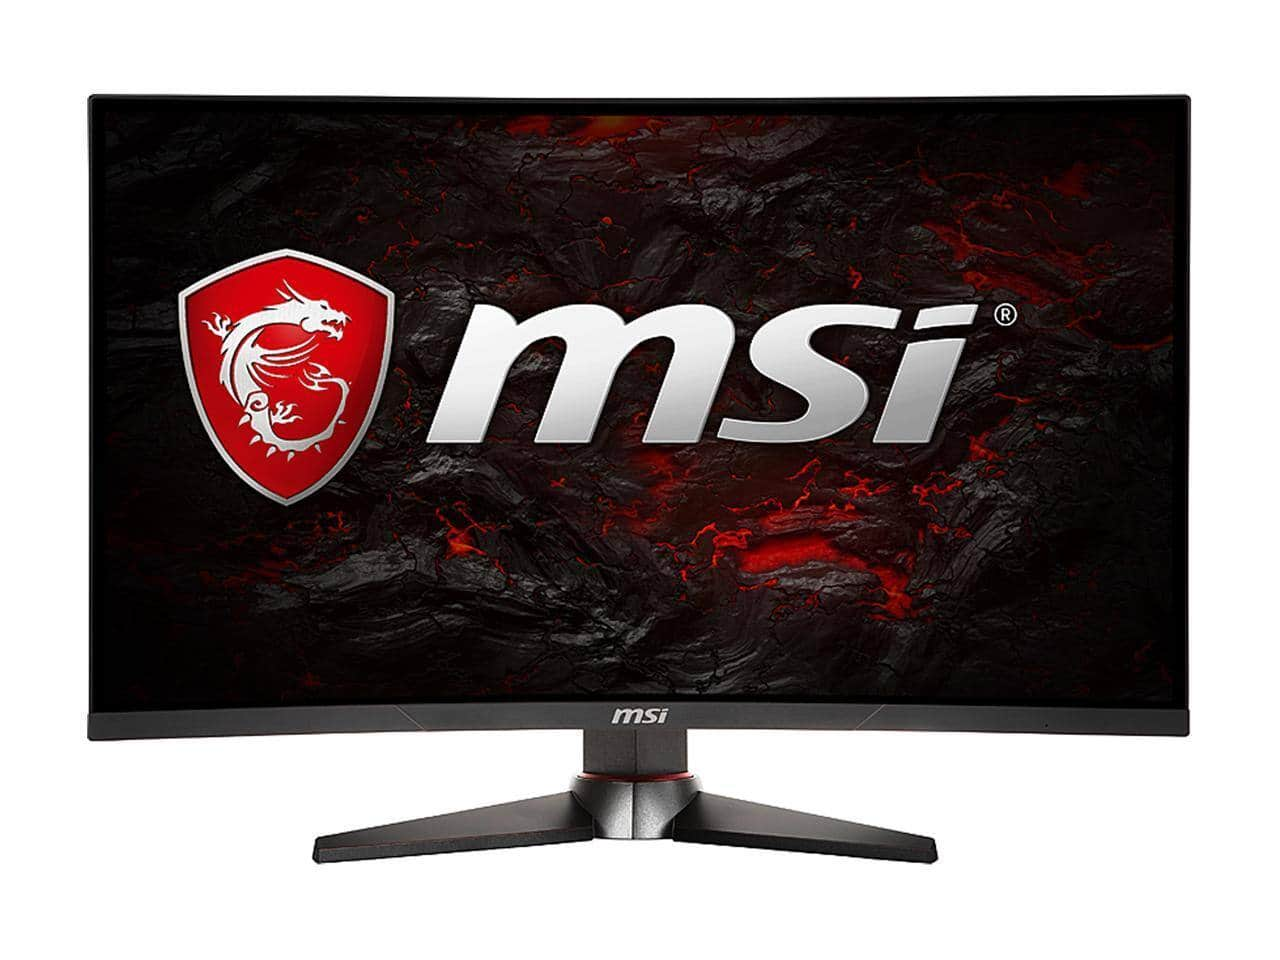 """MSI Optix MAG27CQ [27"""" 2560 x 1440 WQHD 2K Resolution 144Hz VA Panel] Curved Gaming Monitor for $239.99 after Promo Code + F/S"""